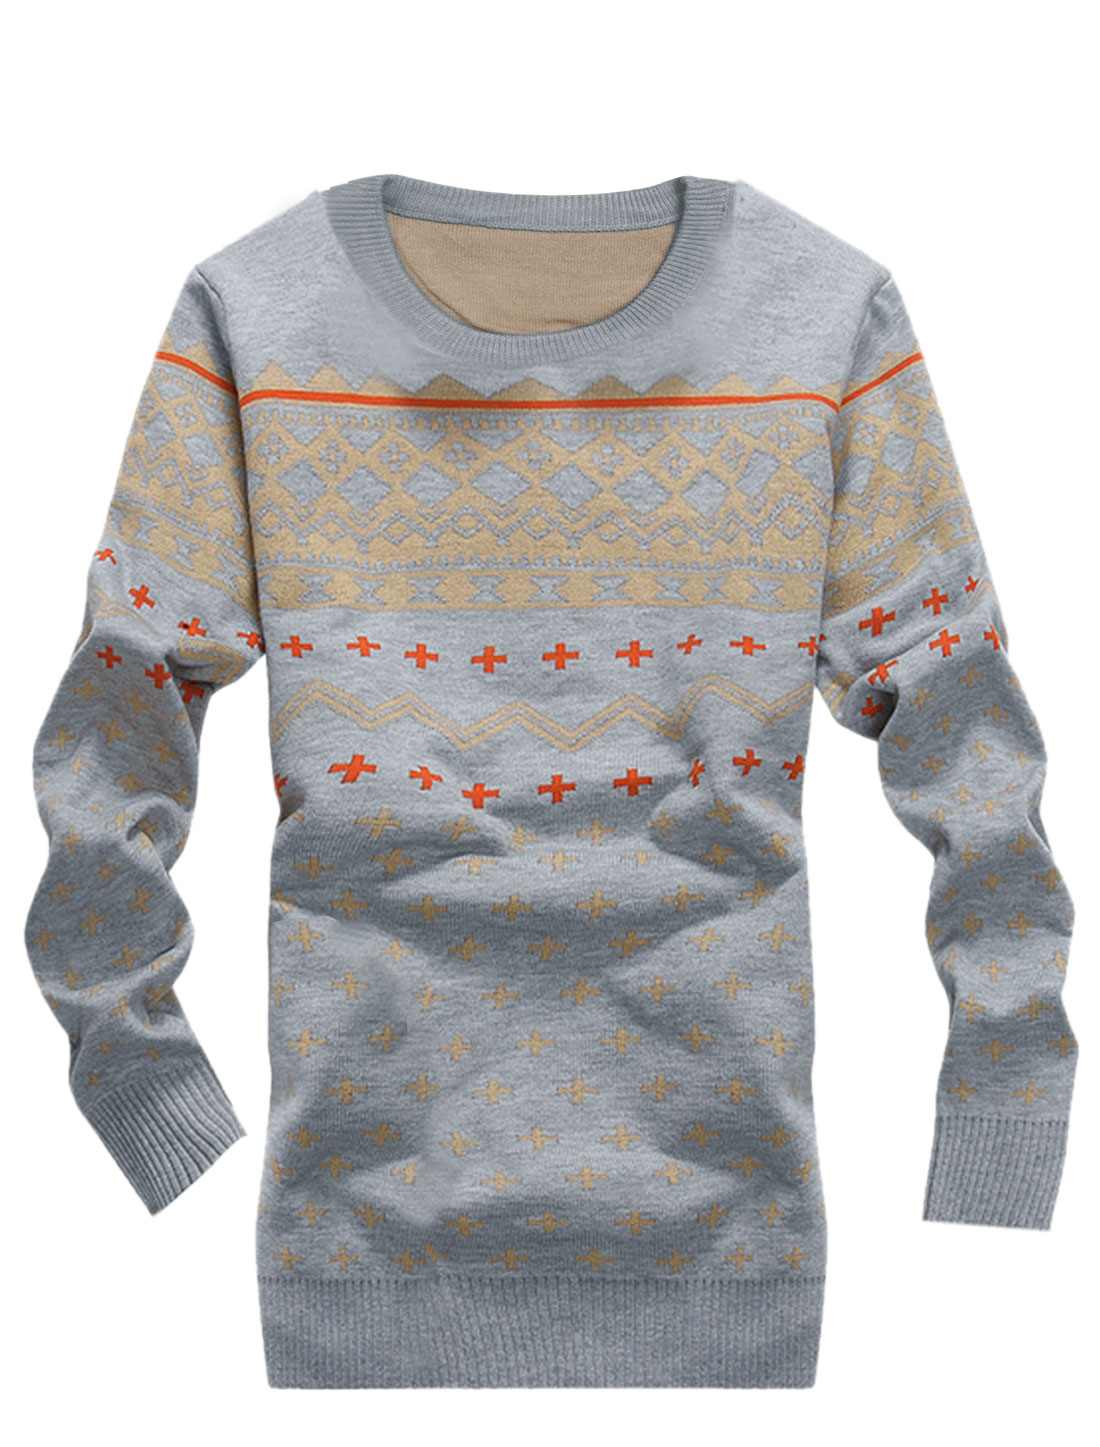 Plus Sign Pattern Slipover Slimt Fit Light Gray Sweater for Men S